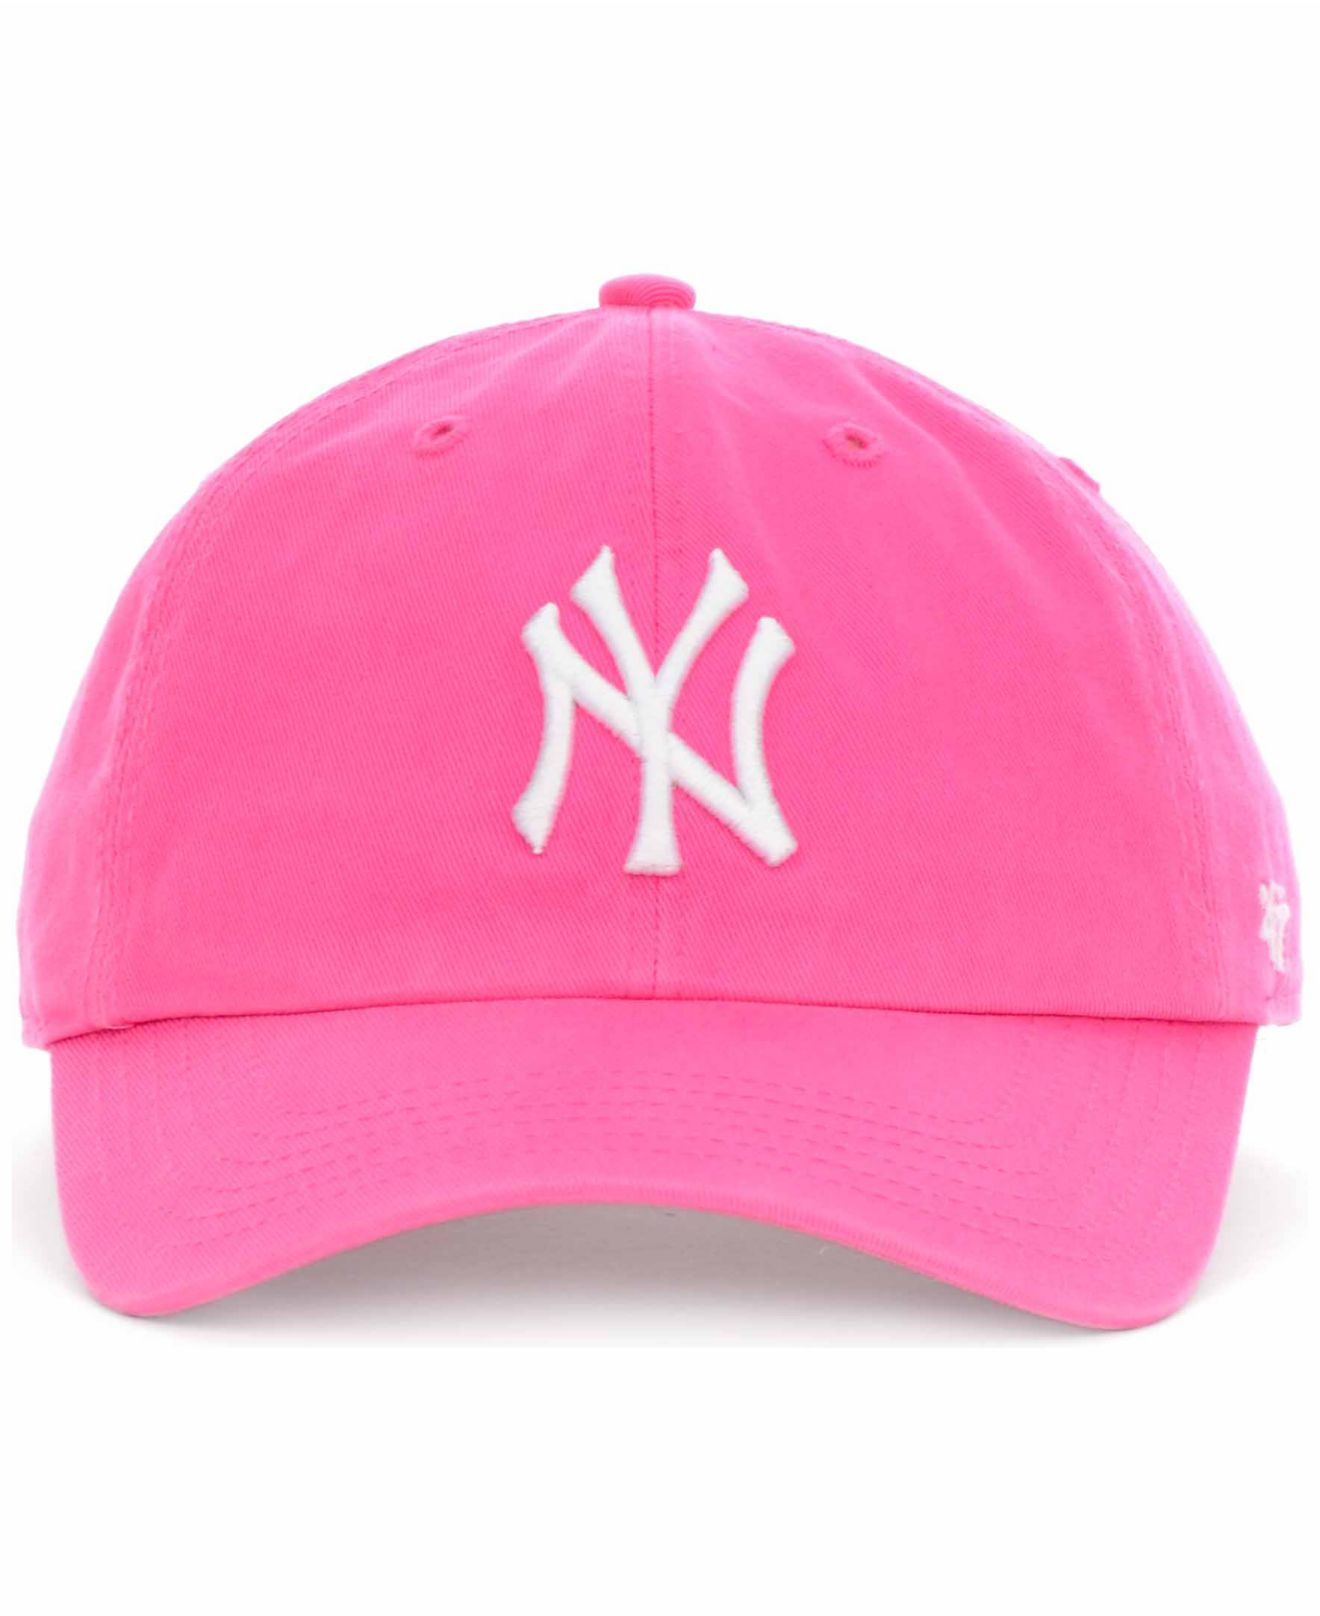 super popular df257 16d40 ... get store f5713 3256f lyst 47 brand new york yankees clean up hat in  pink 4fc4a